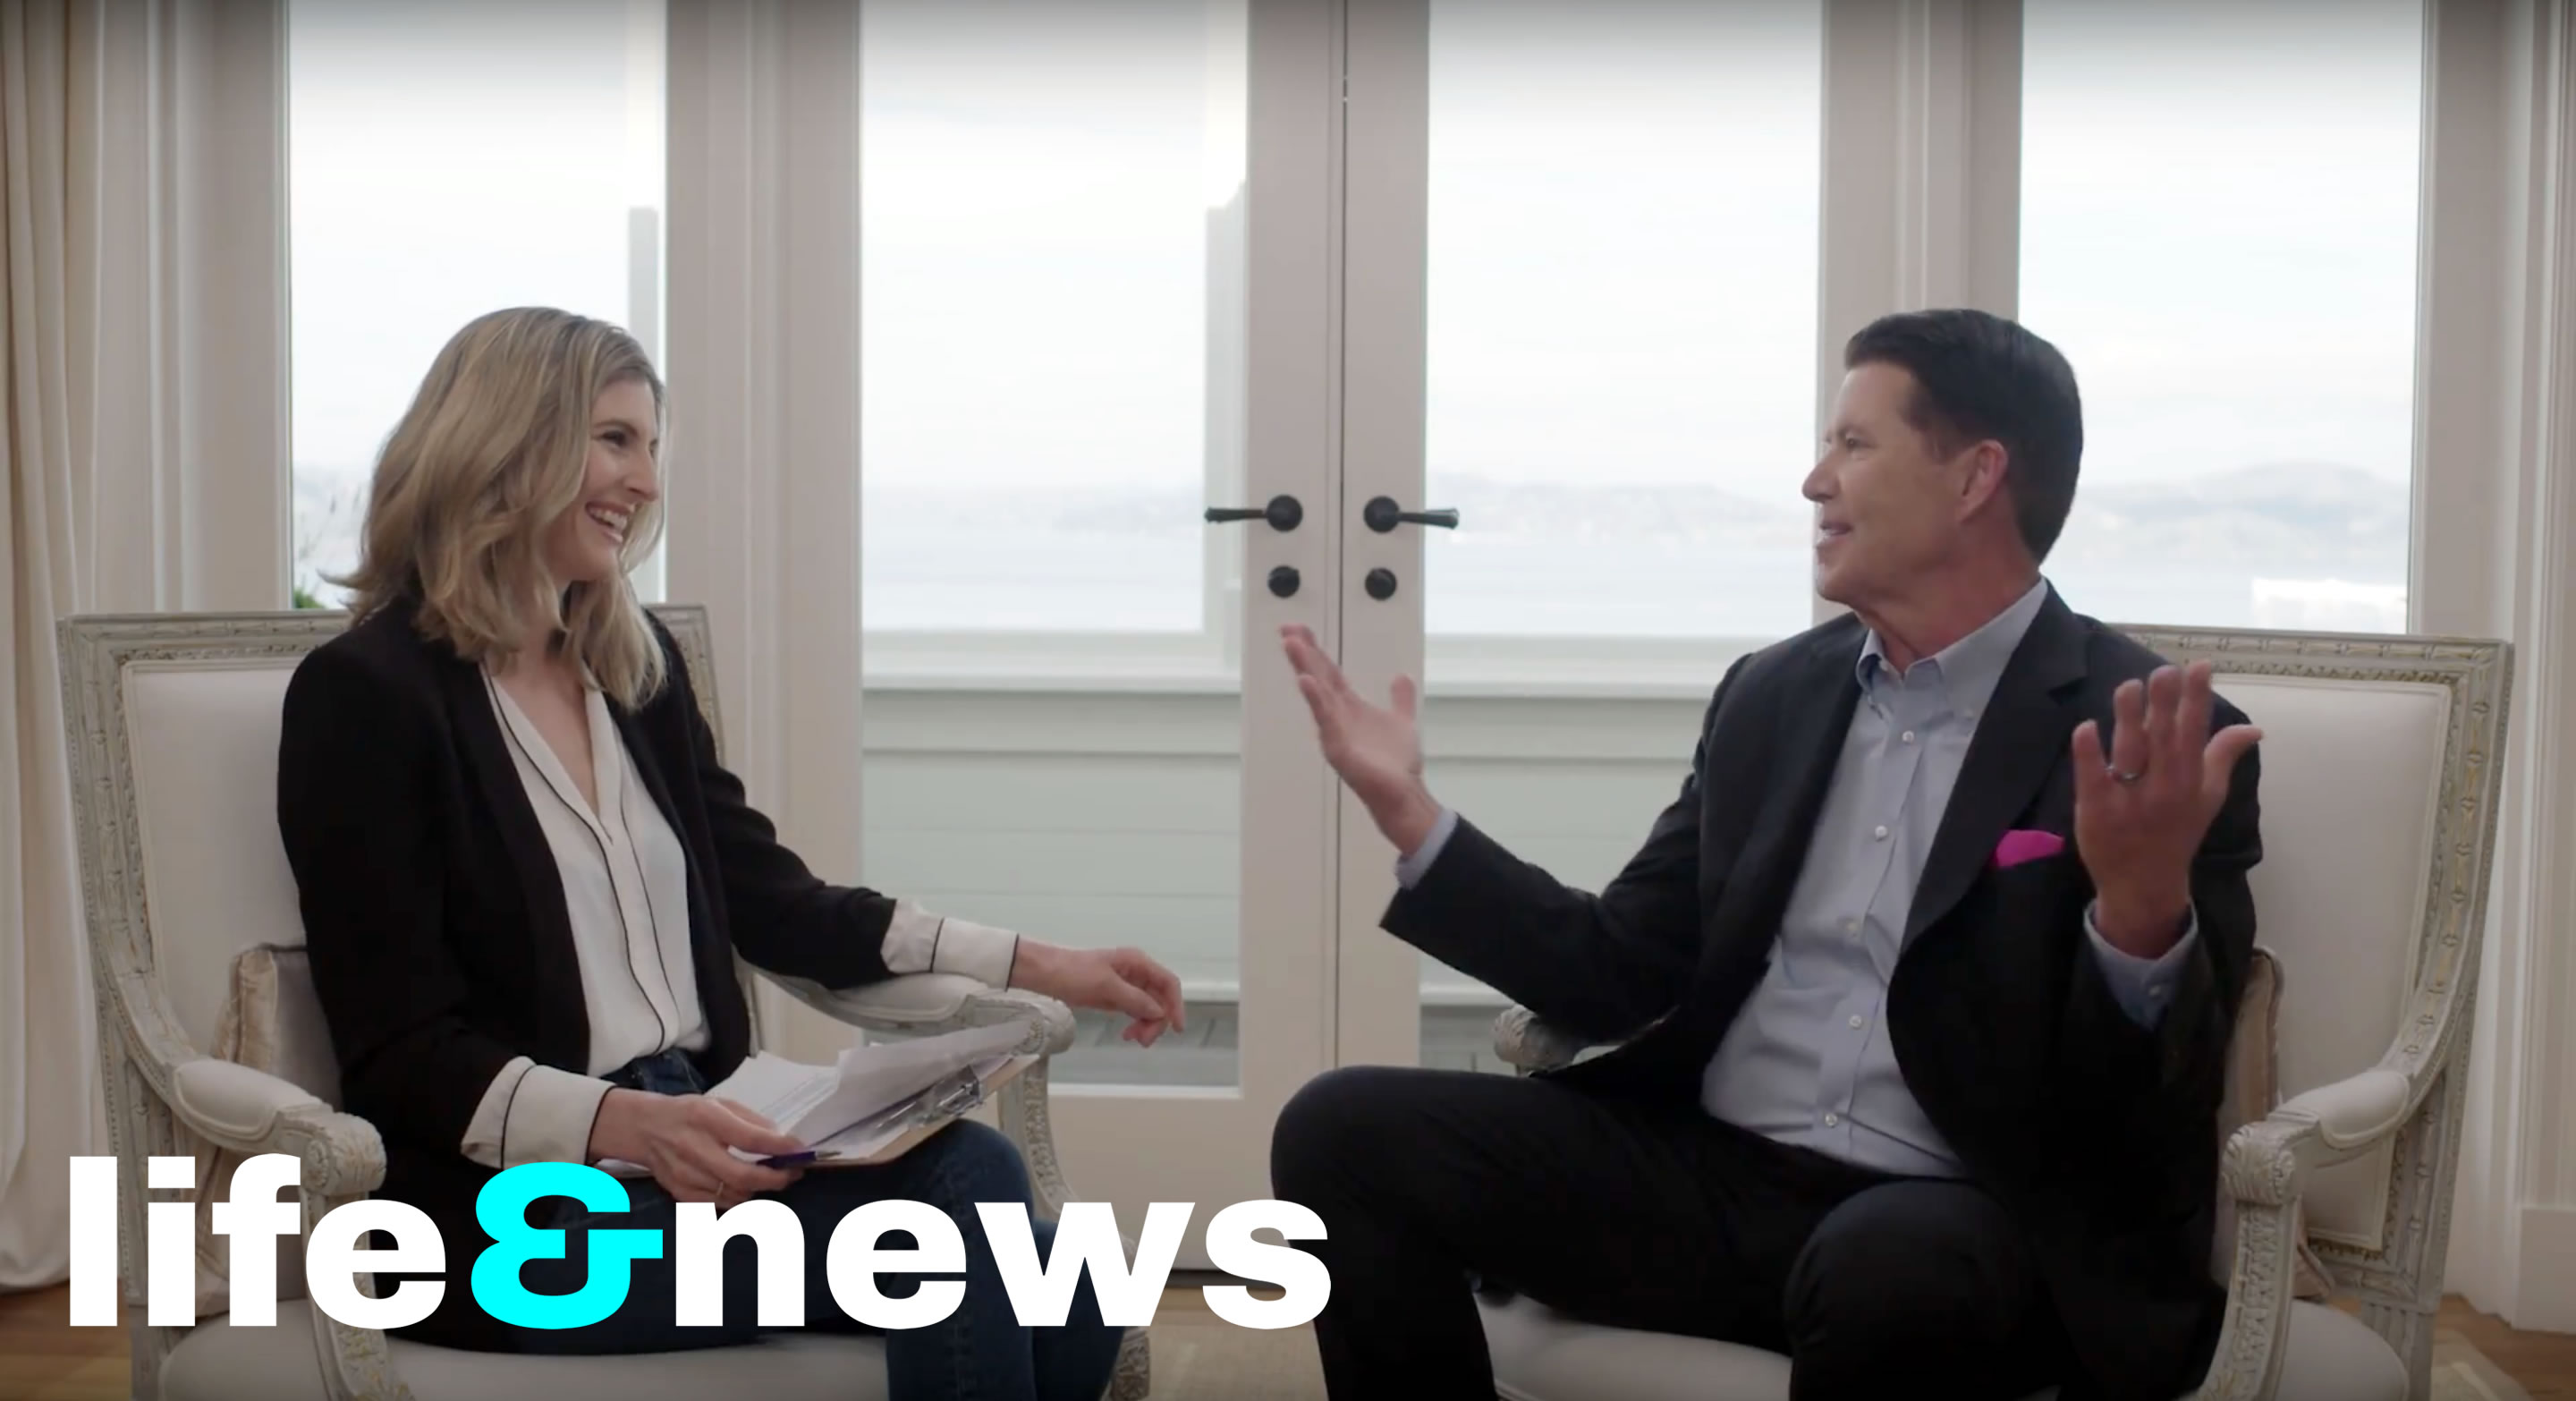 A Conversation with Keith Krach: Transformational Leadership